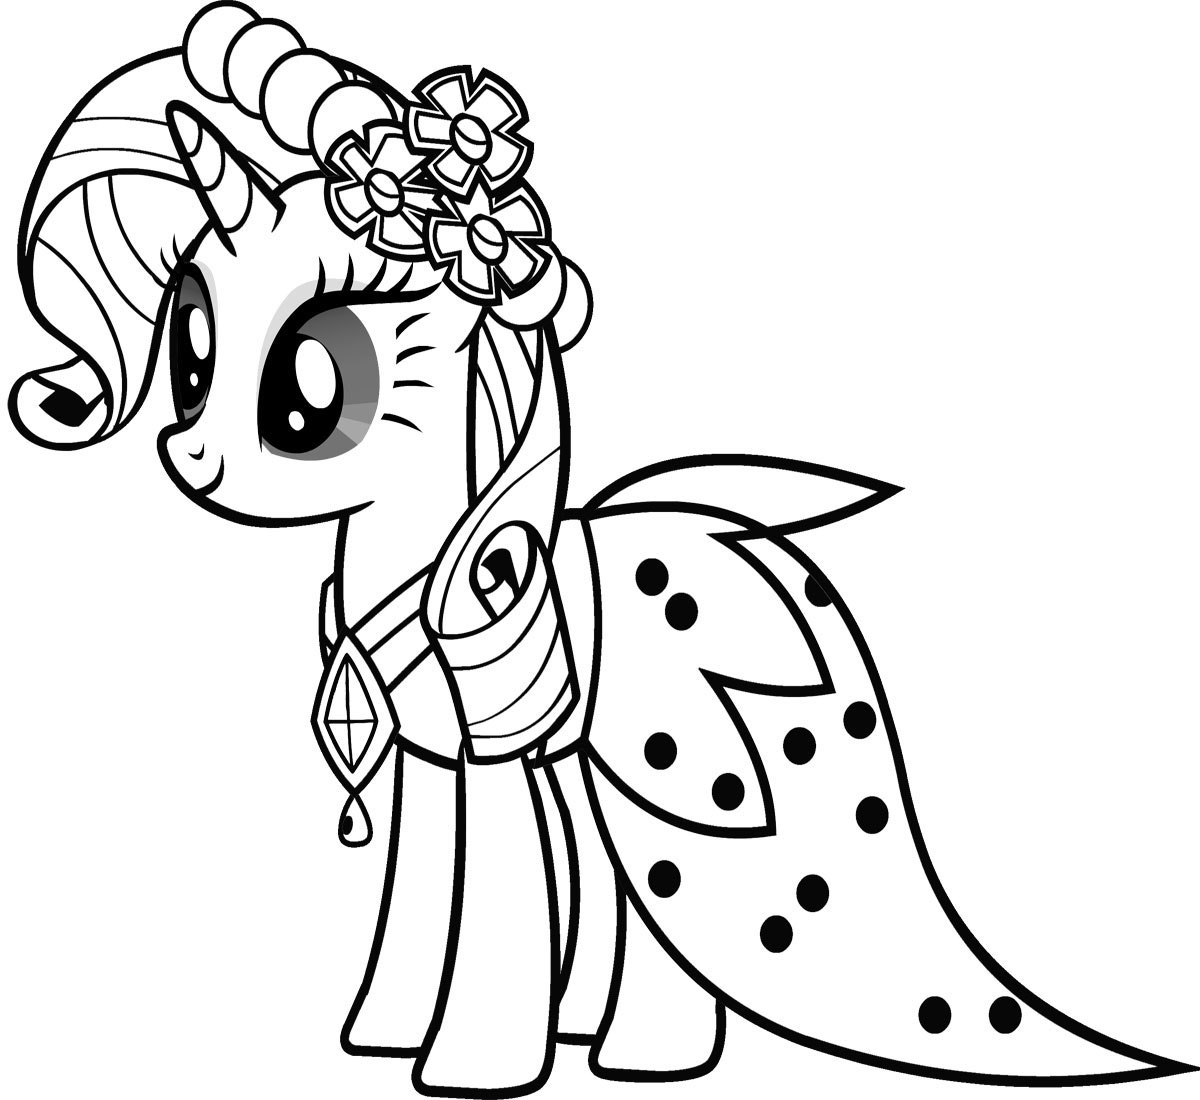 Free printable my little pony coloring pages for kids for Free printable cartoon coloring pages